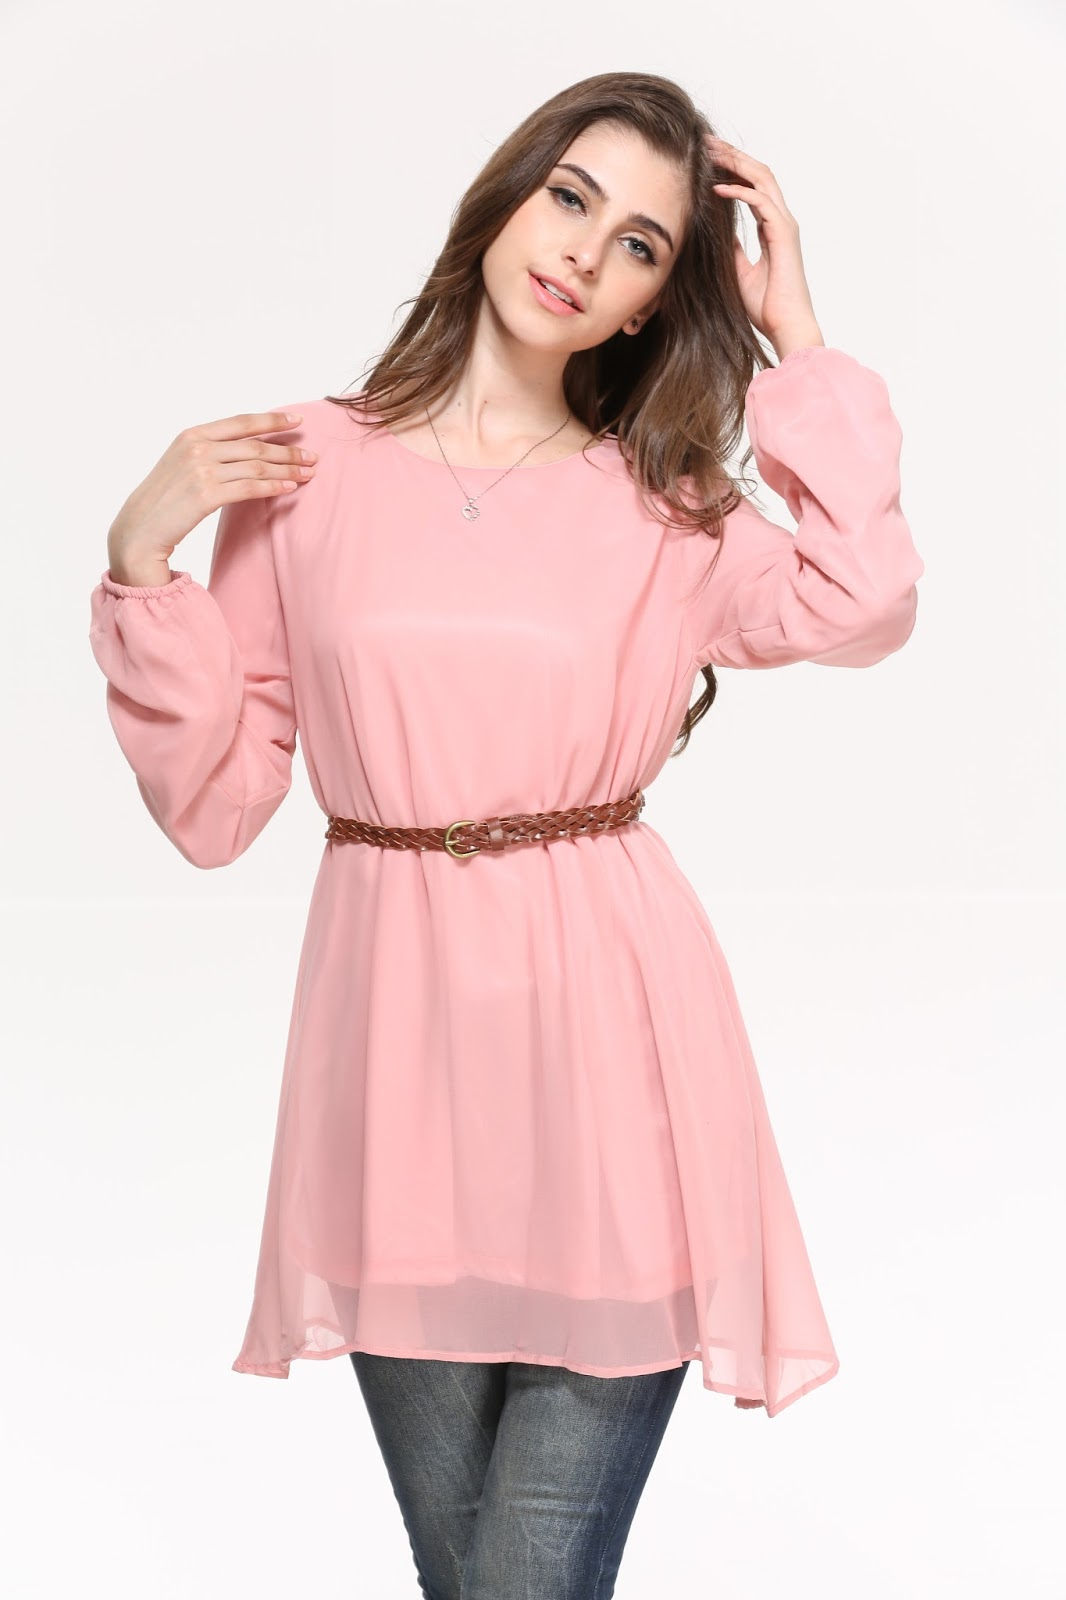 Chiffon Blouse With Belt PINK RM40